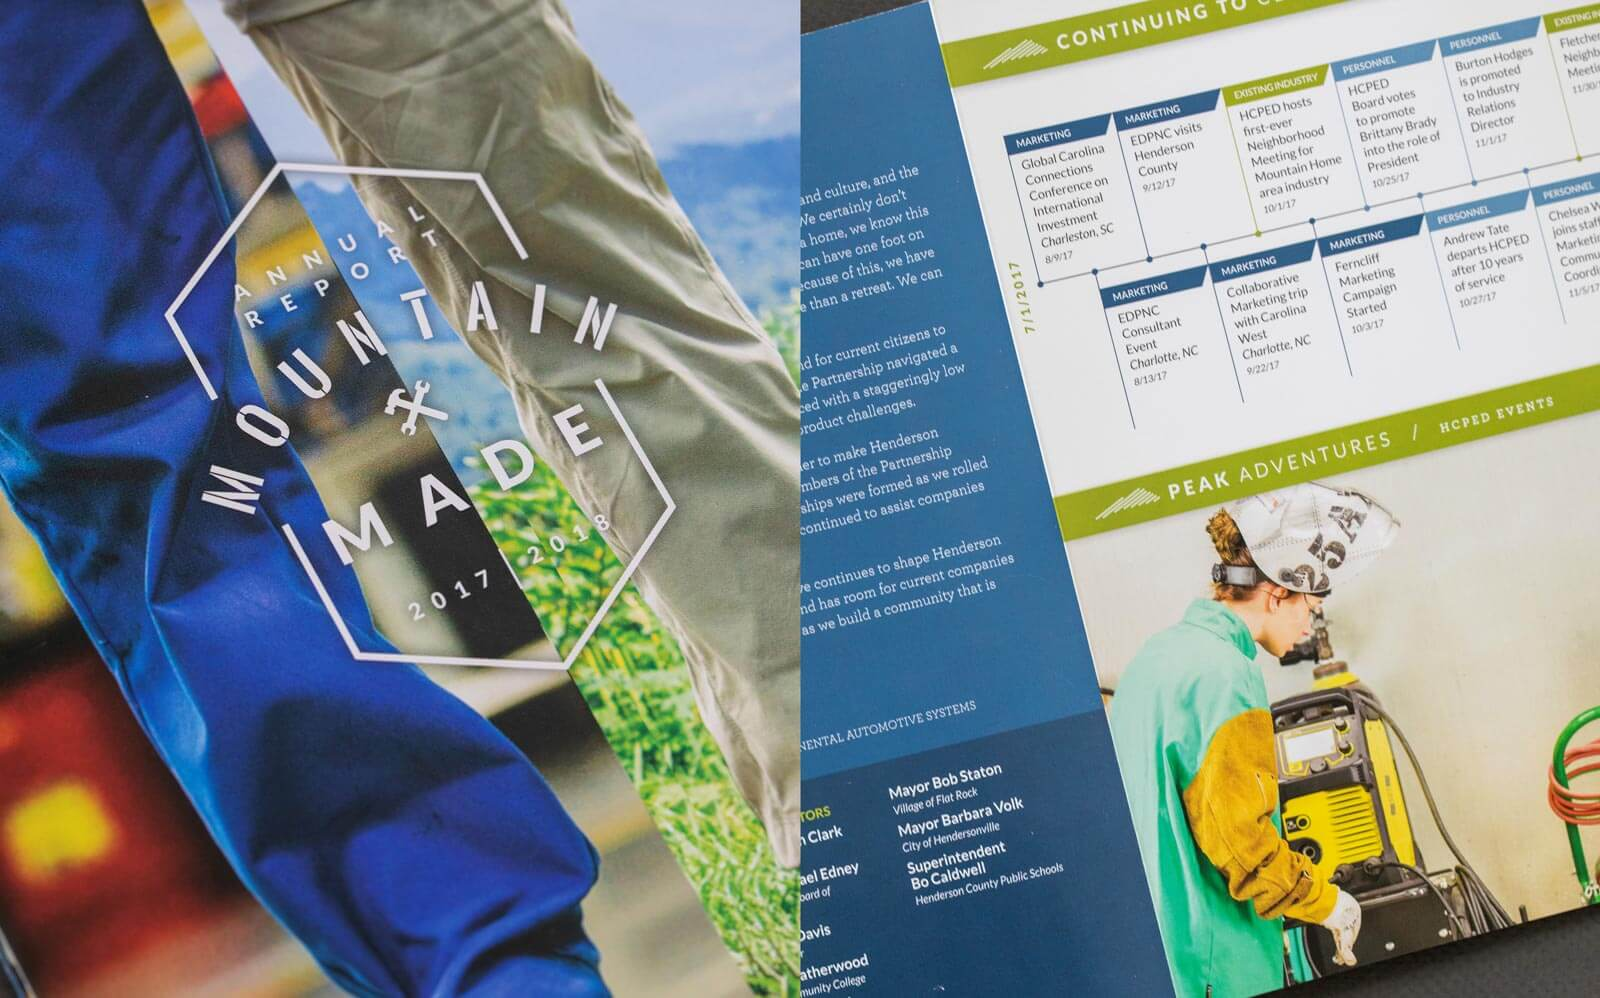 Henderson County Partnership for Economic Development (HCPED) annual report cover and spread detail featuring outdoor products and manufacturing